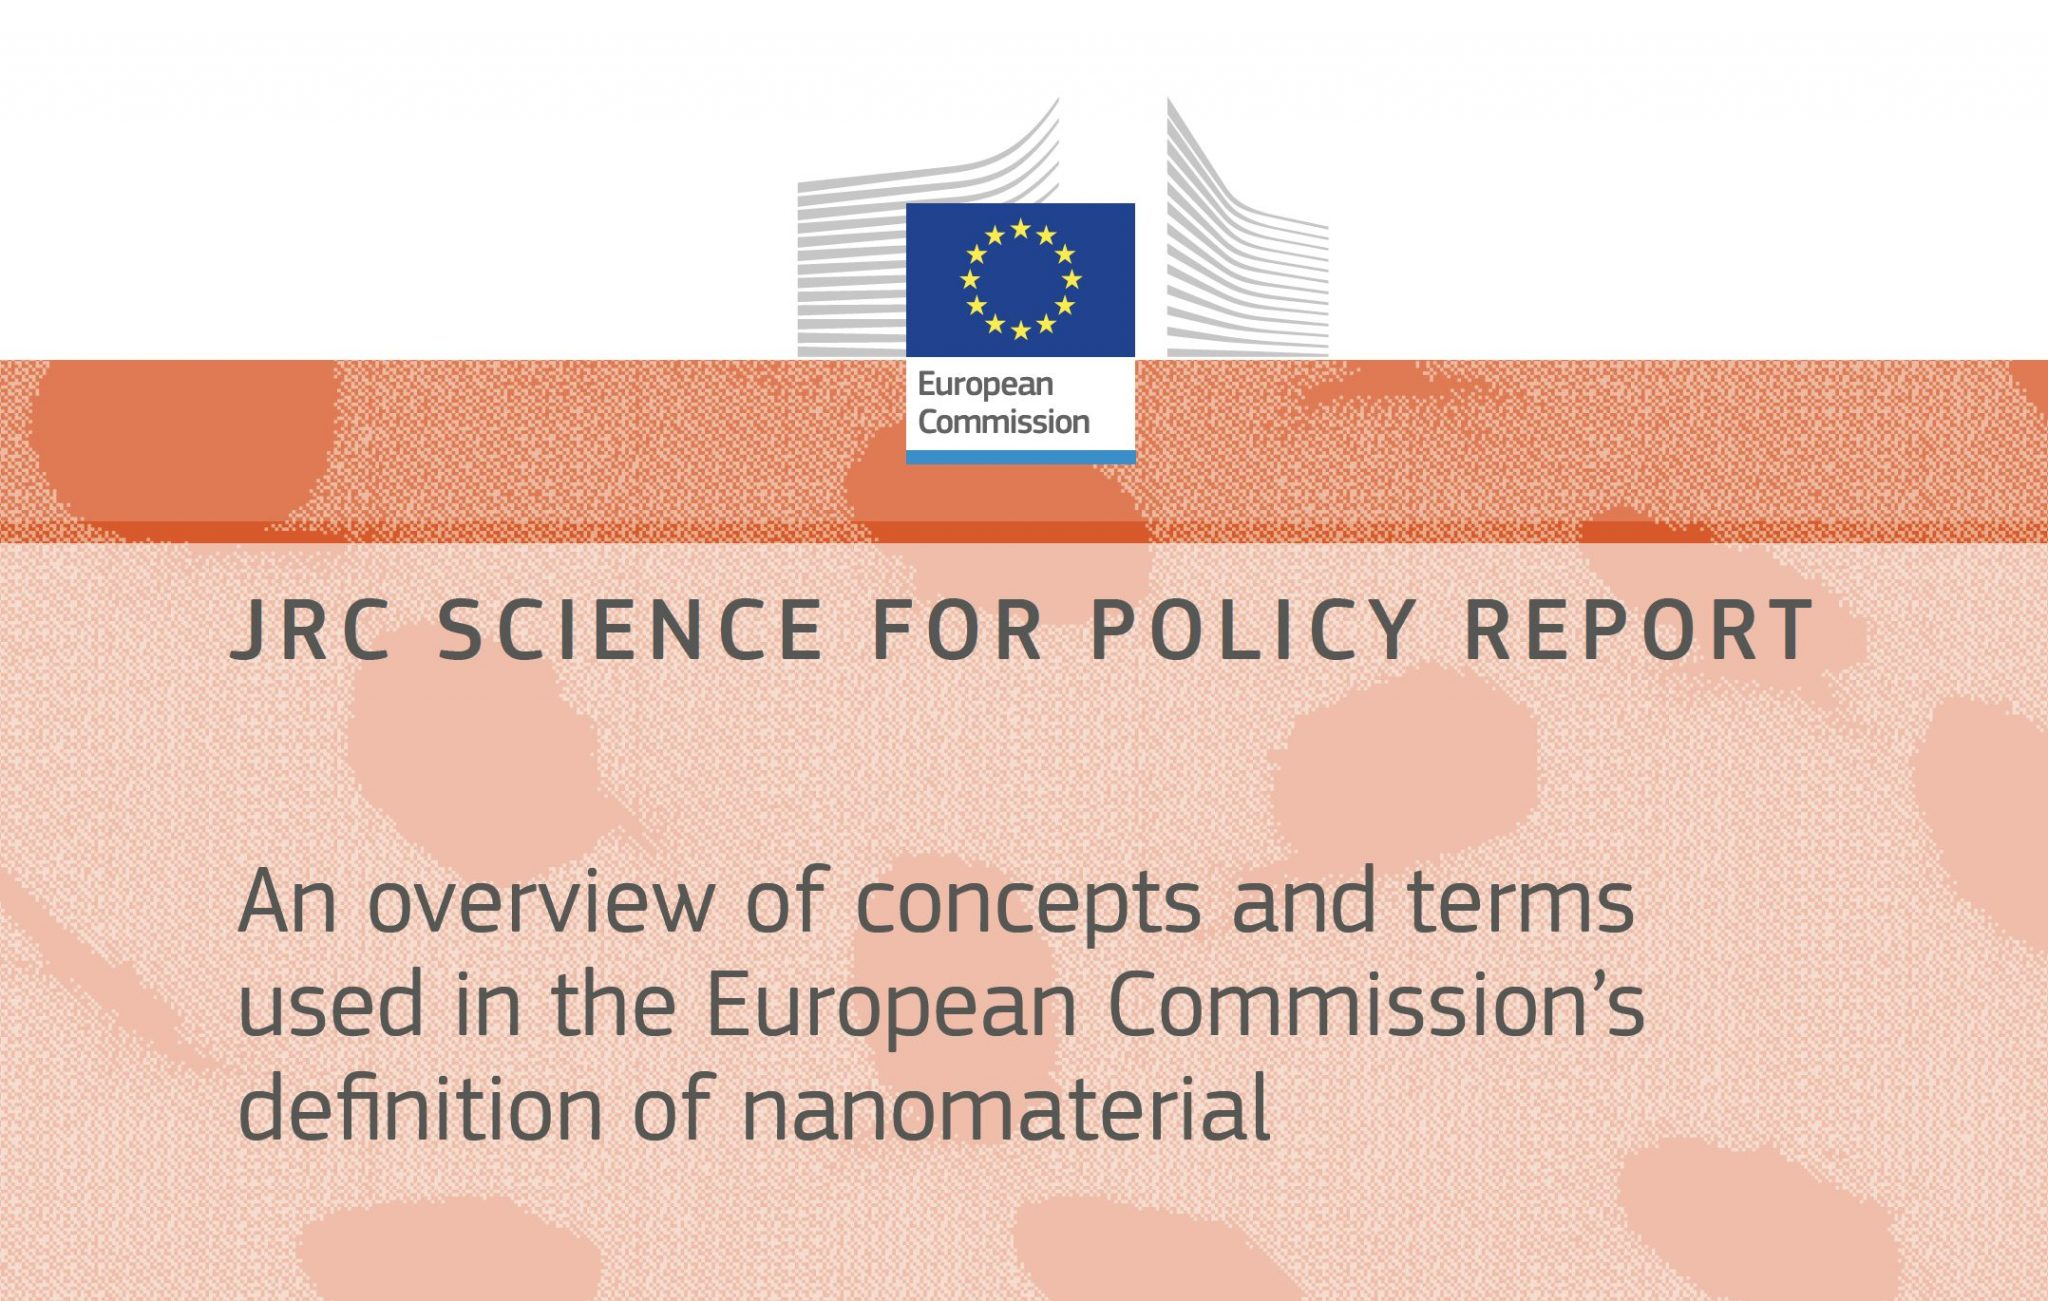 JRC policy report: an overview of concepts and terms used in the European Commission's definition of nanomaterial